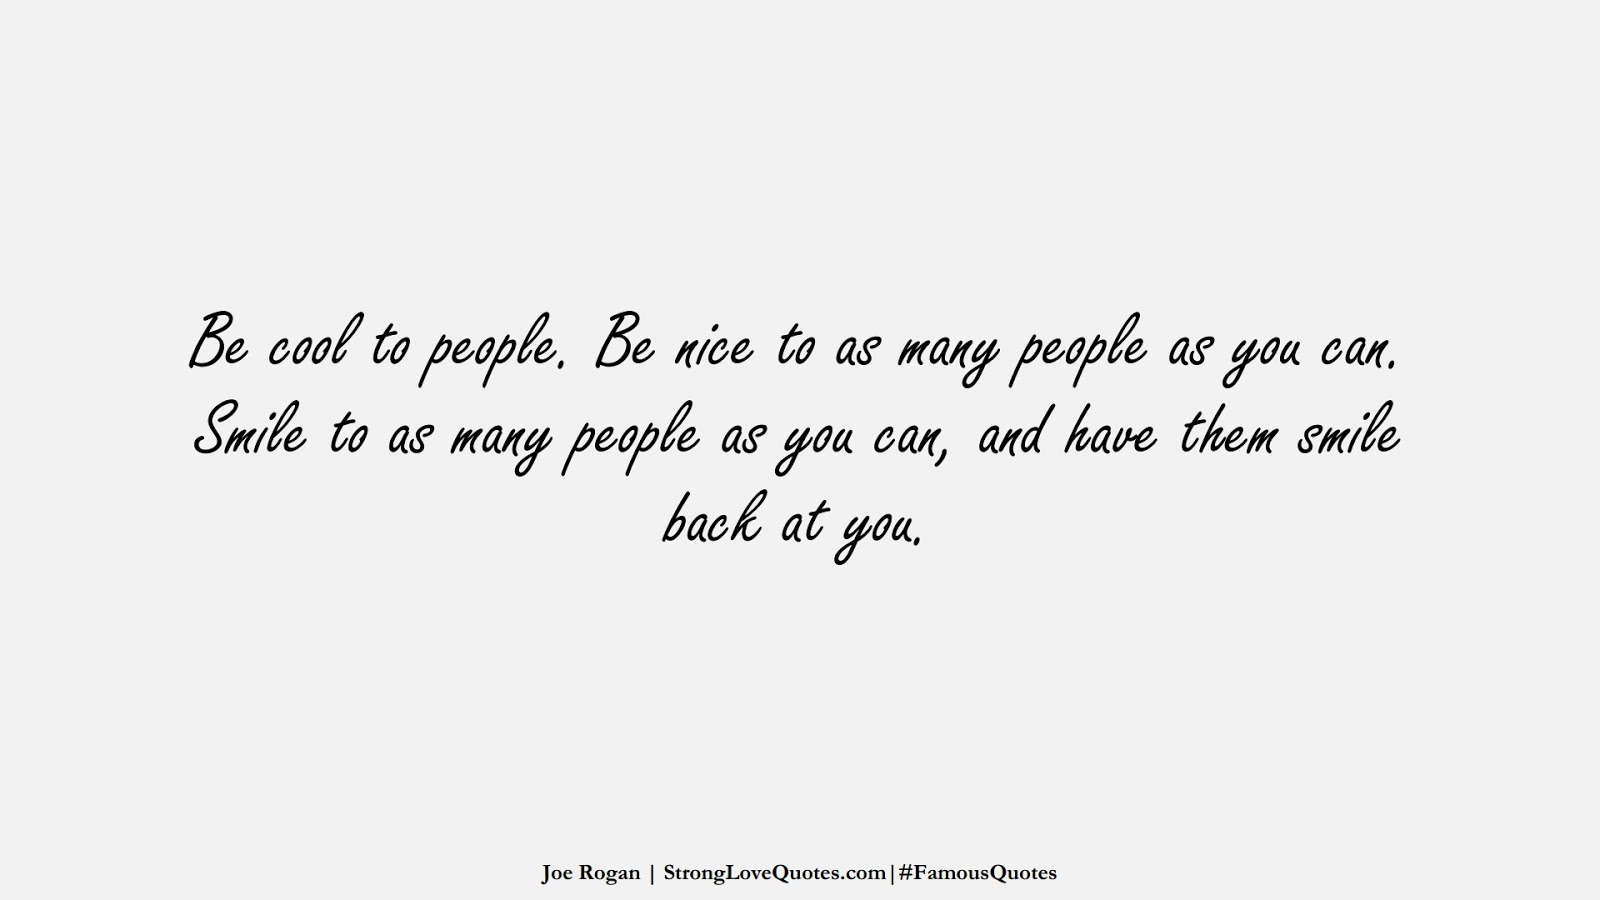 Be cool to people. Be nice to as many people as you can. Smile to as many people as you can, and have them smile back at you. (Joe Rogan);  #FamousQuotes